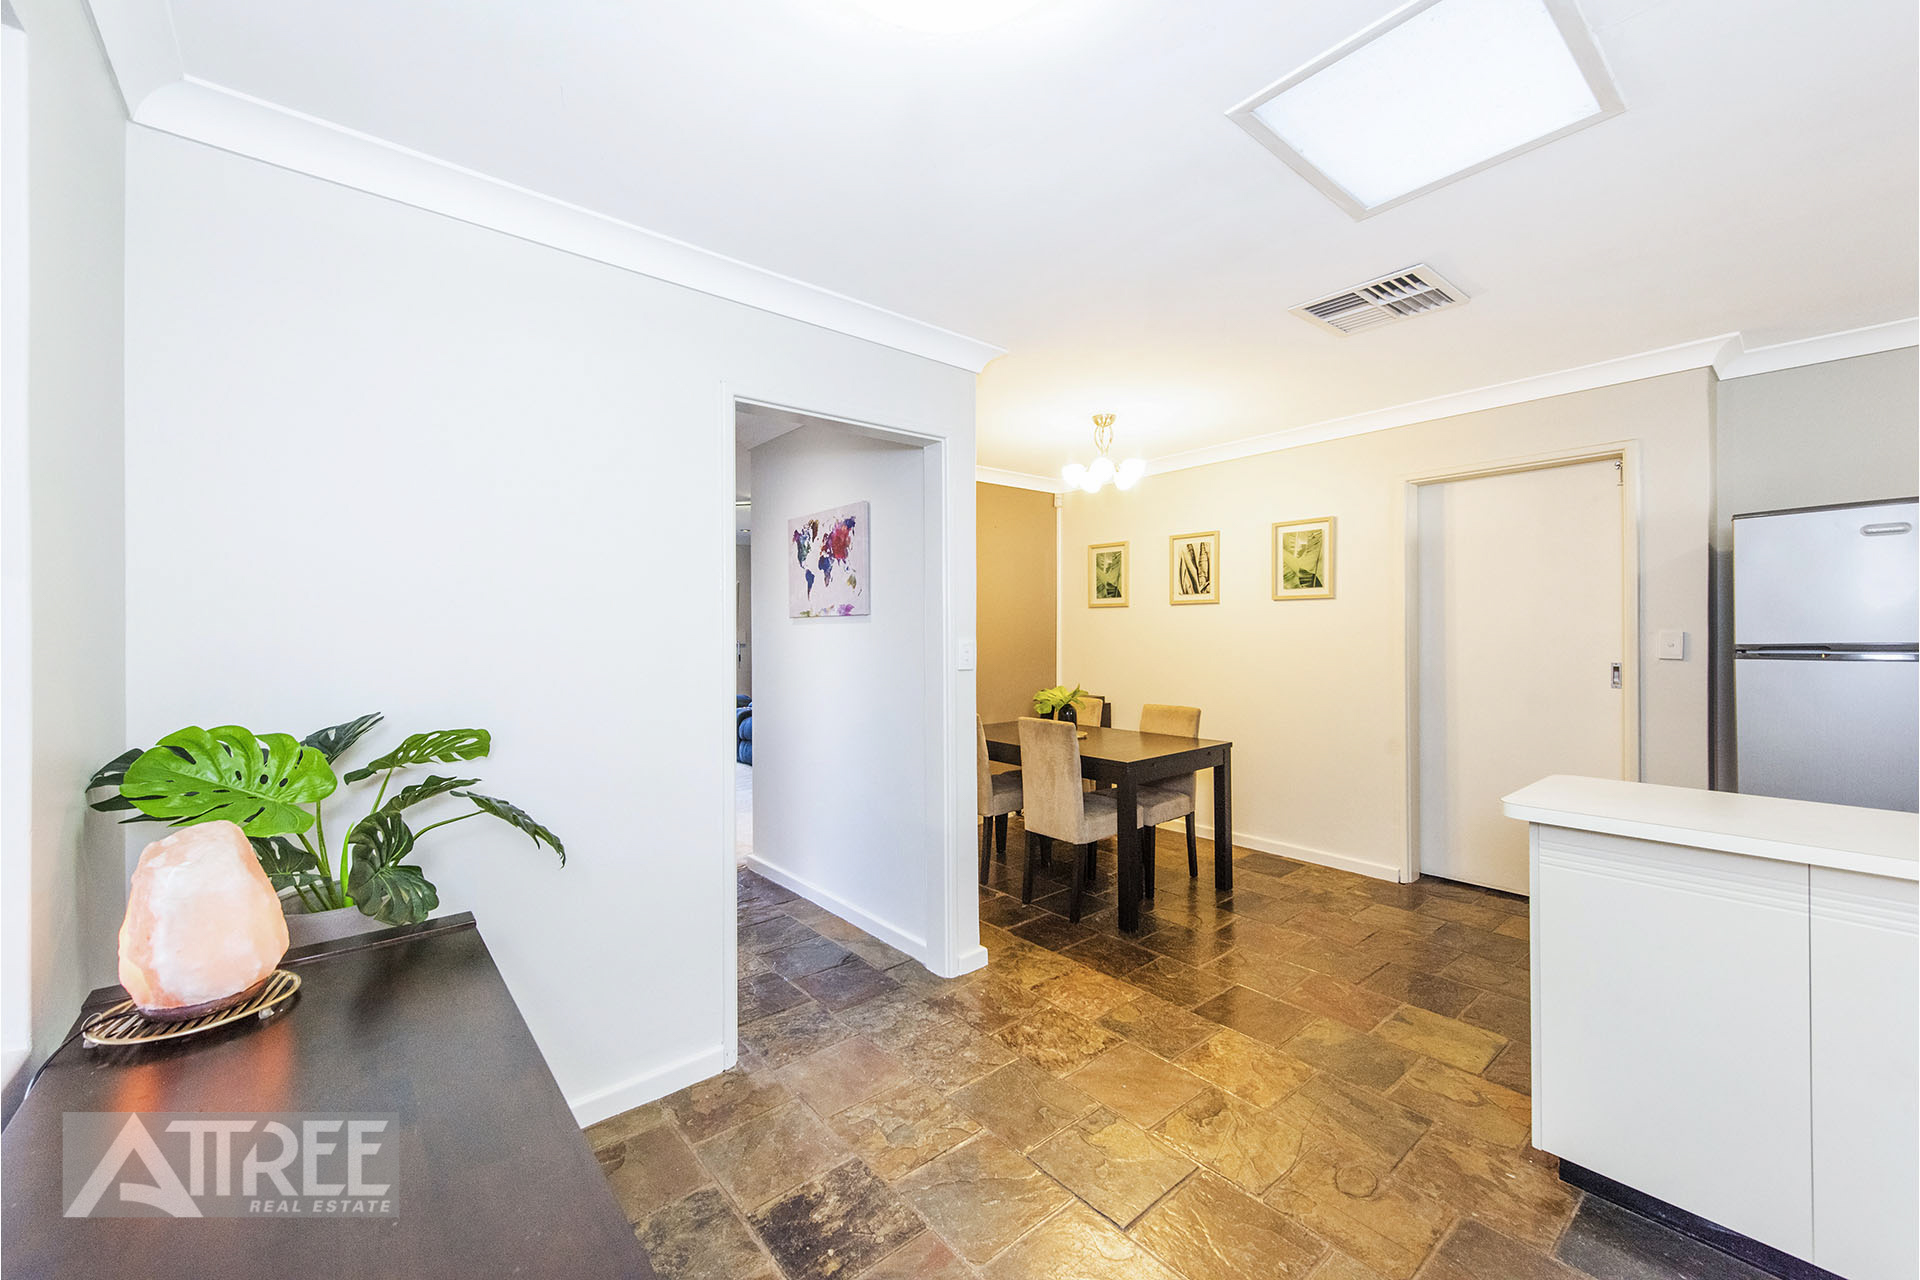 Property for sale in GOSNELLS, 35 Rosekelly Road : Attree Real Estate